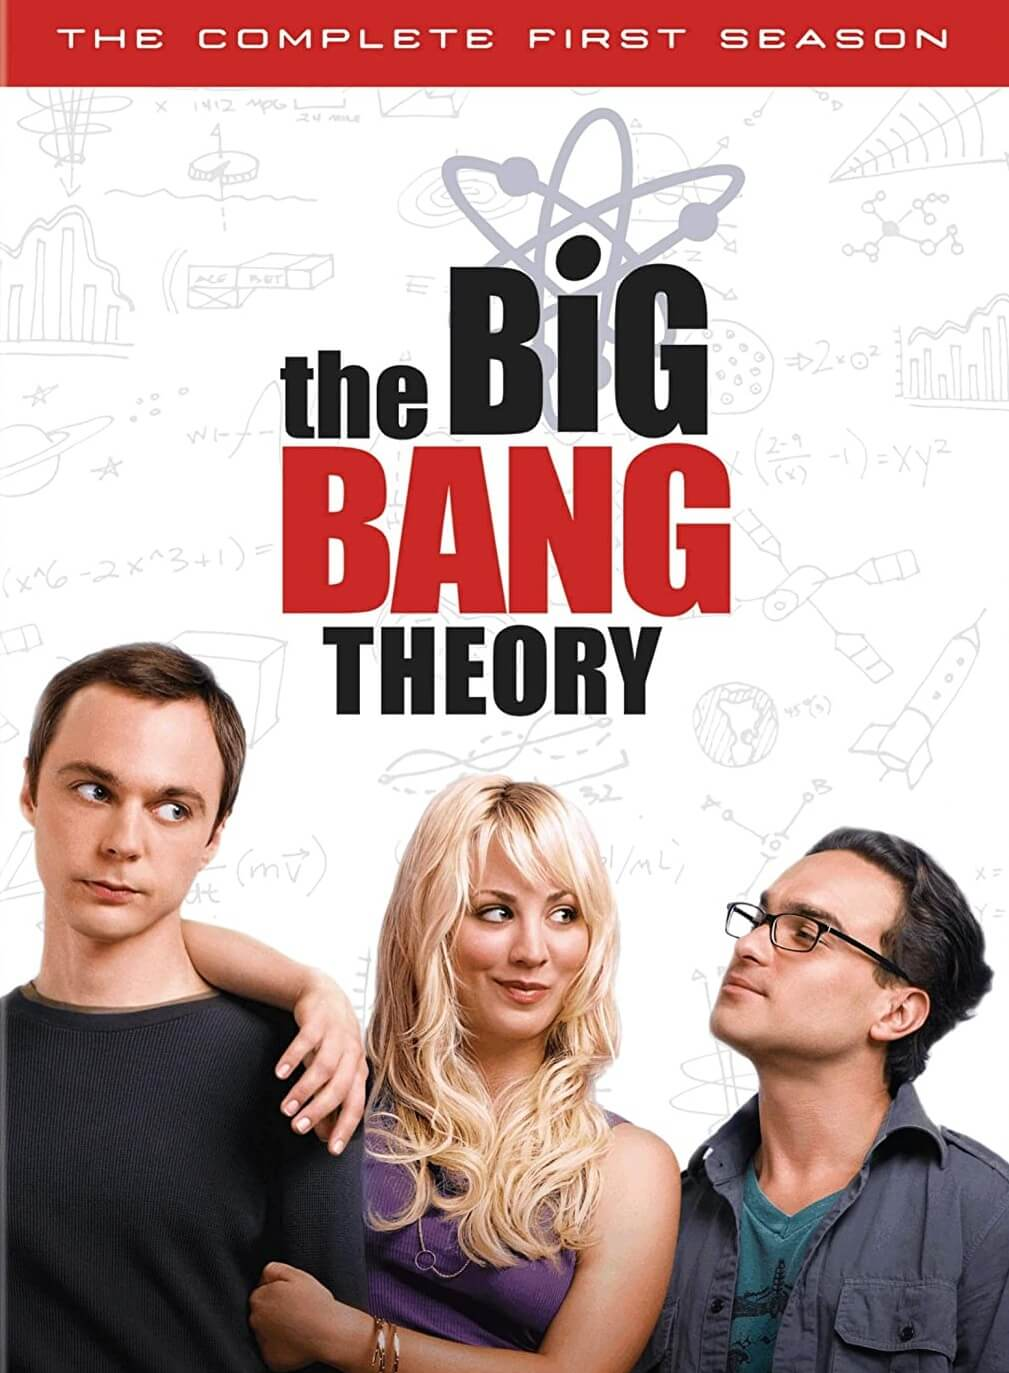 The Big Bang Theory S01 E11